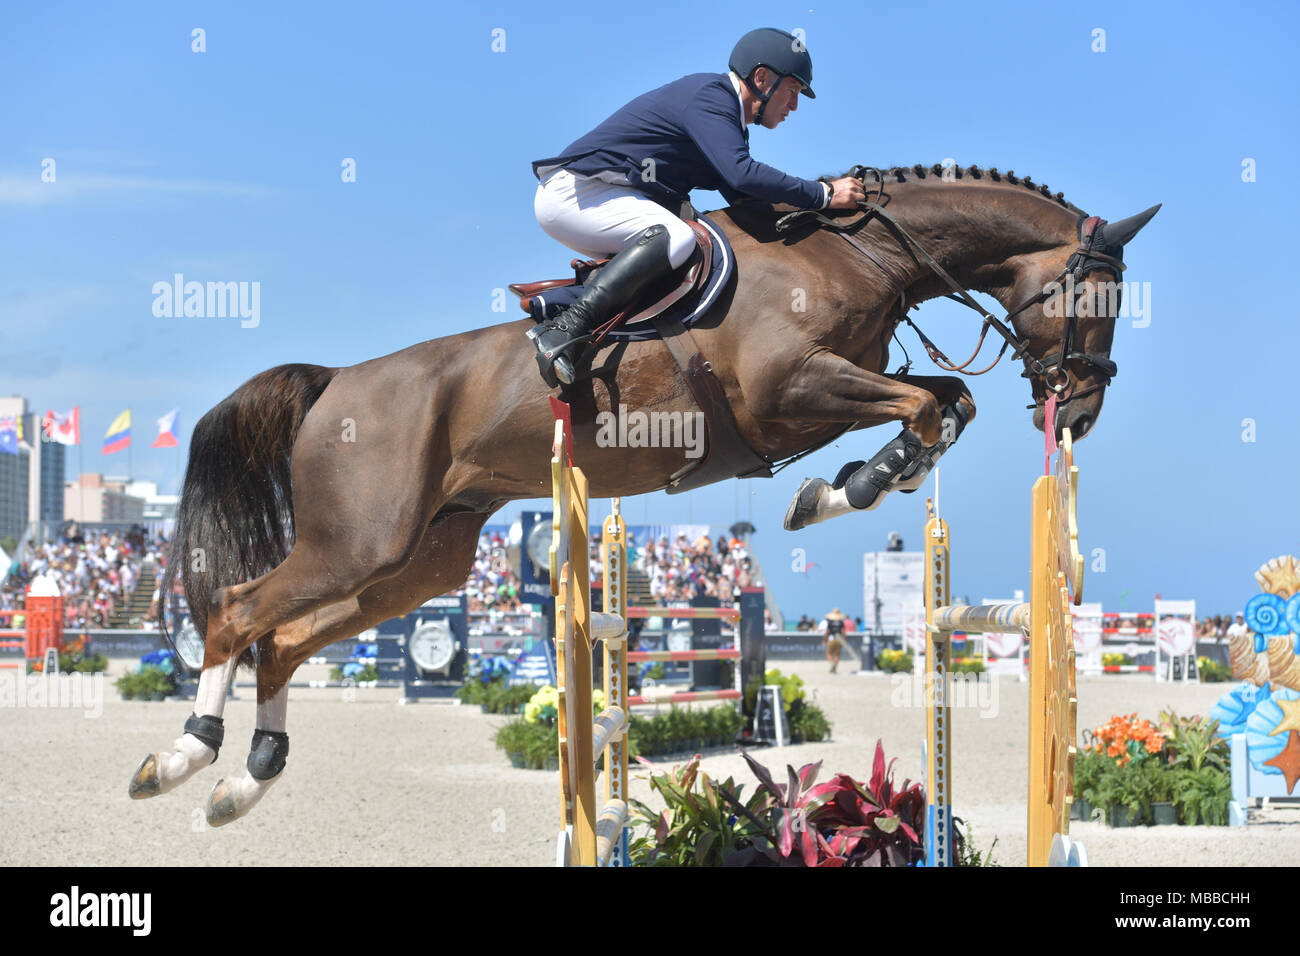 MIAMI BEACH, FL - APRIL 07: Roger-Yves Bost at the Longines Global Champions Tour stop day 3 in Miami Beach on April 7, 2018 in Miami Beach, Florida  People:  Roger-Yves Bost - Stock Image